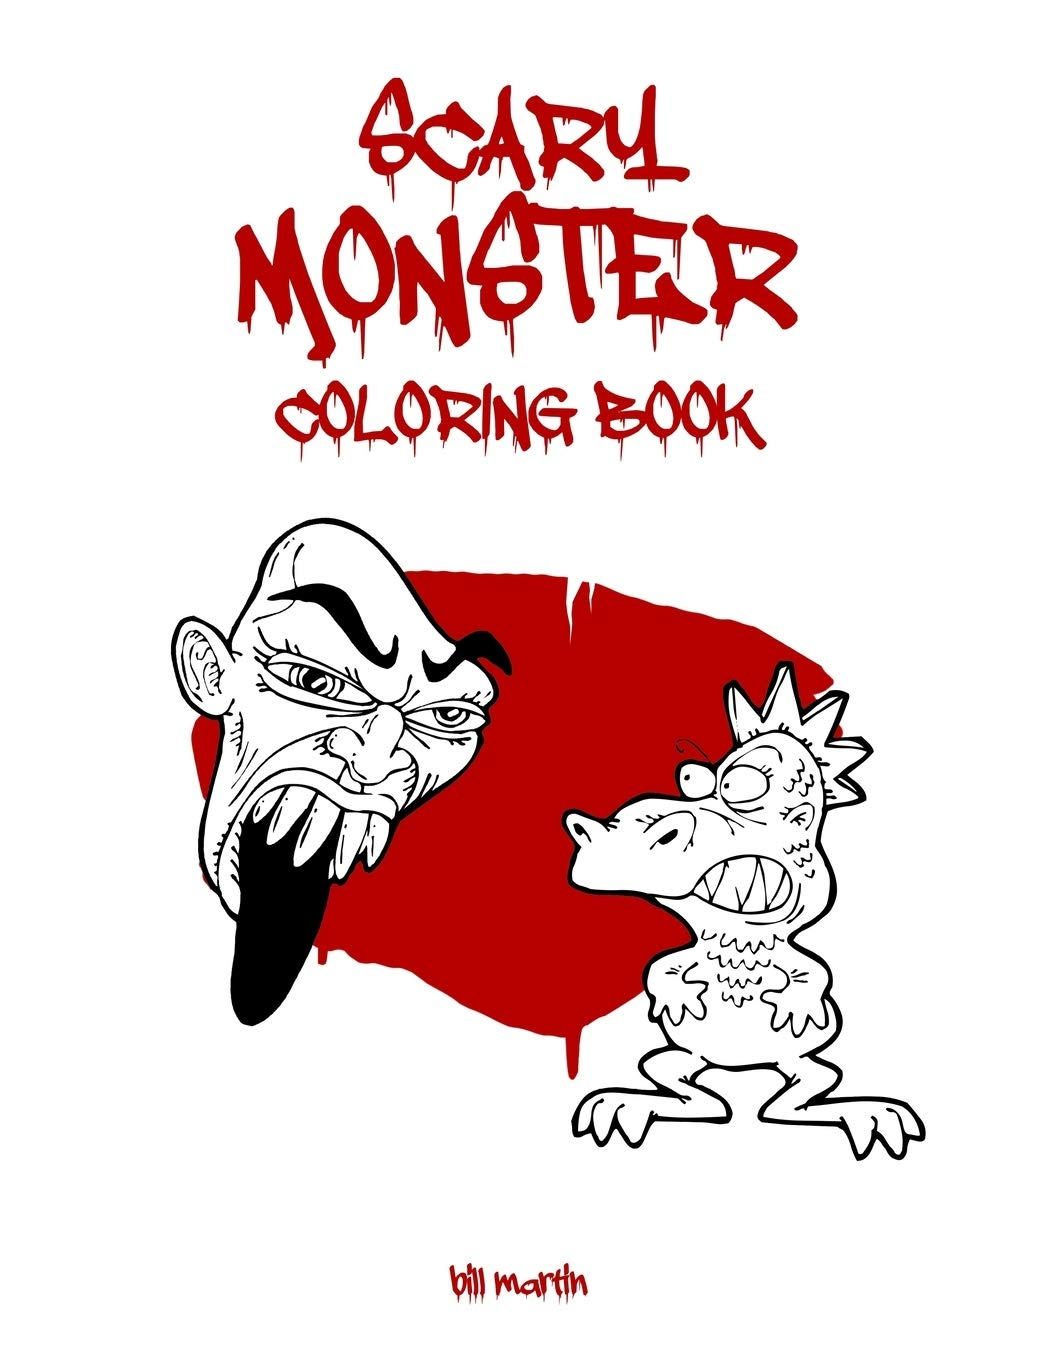 Scary Monster Coloring Book Cute Horror Monsters To Color For Kids And Adults Martin Bill 9798642684795 Amazon Com Books